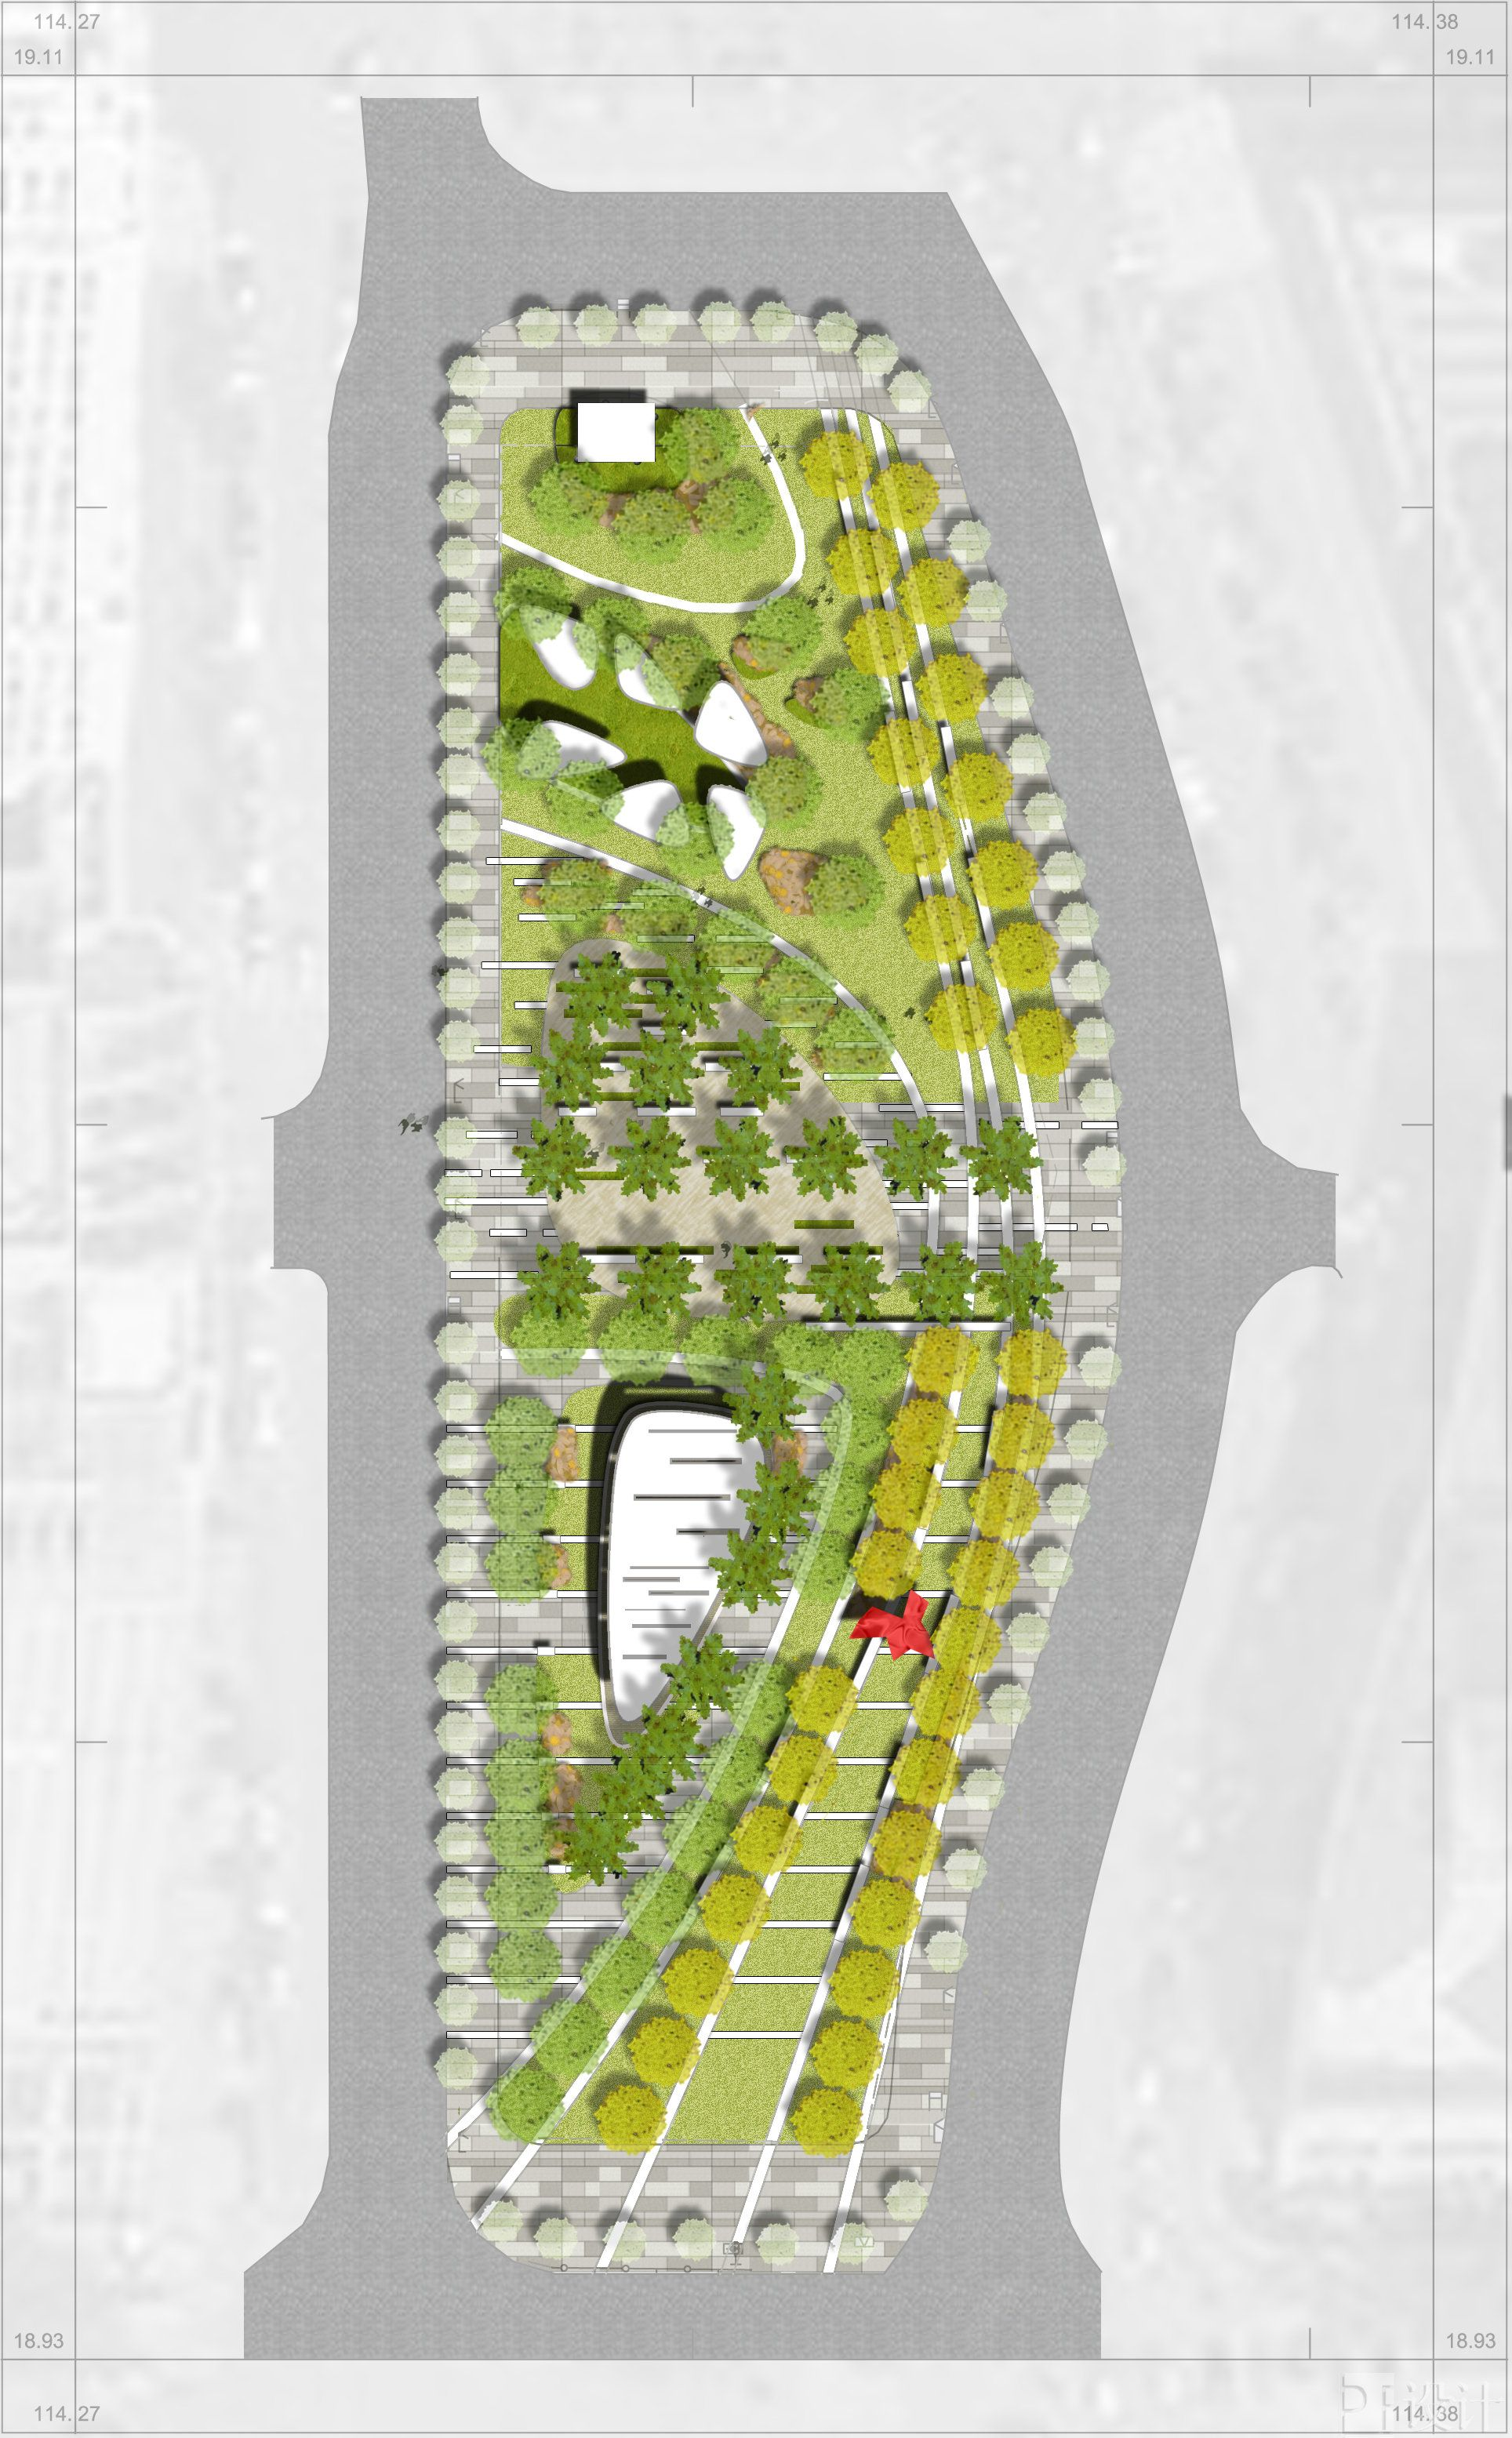 100 landscape layout drawings ideas landscaping ideas for city design including landscaping design garden ideas flowers and garden design - Garden Design Cad